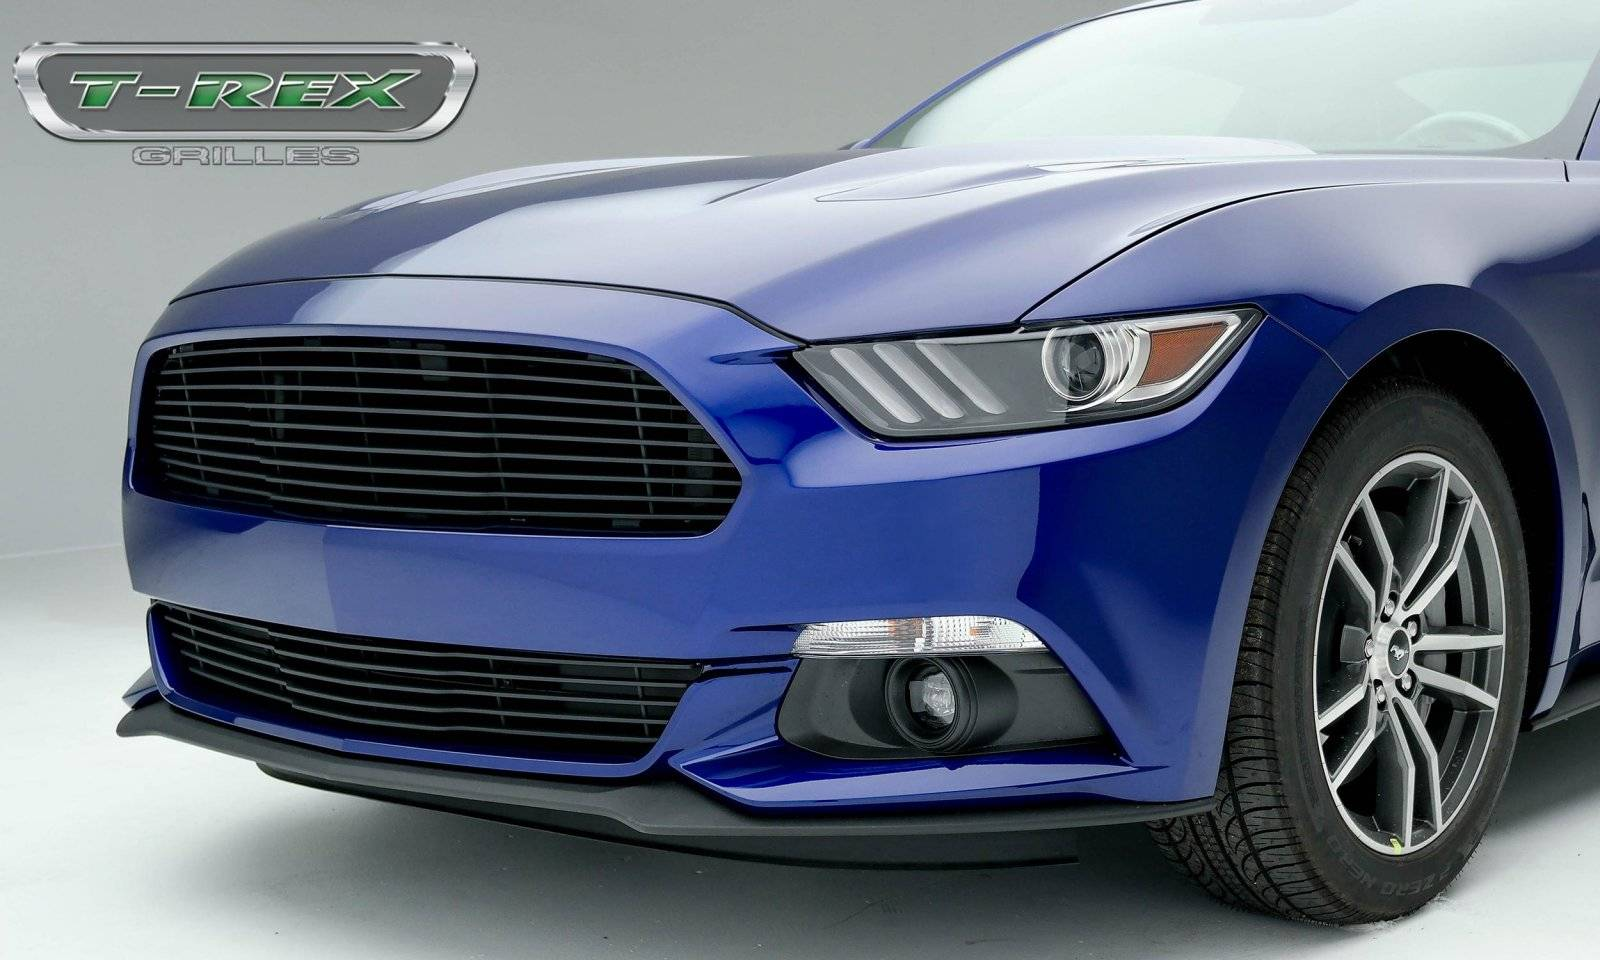 T-REX Ford Mustang GT - Laser Billet Grille - Main, Replacement with Flat Black Powder Coated Finish - Pt # 6215301